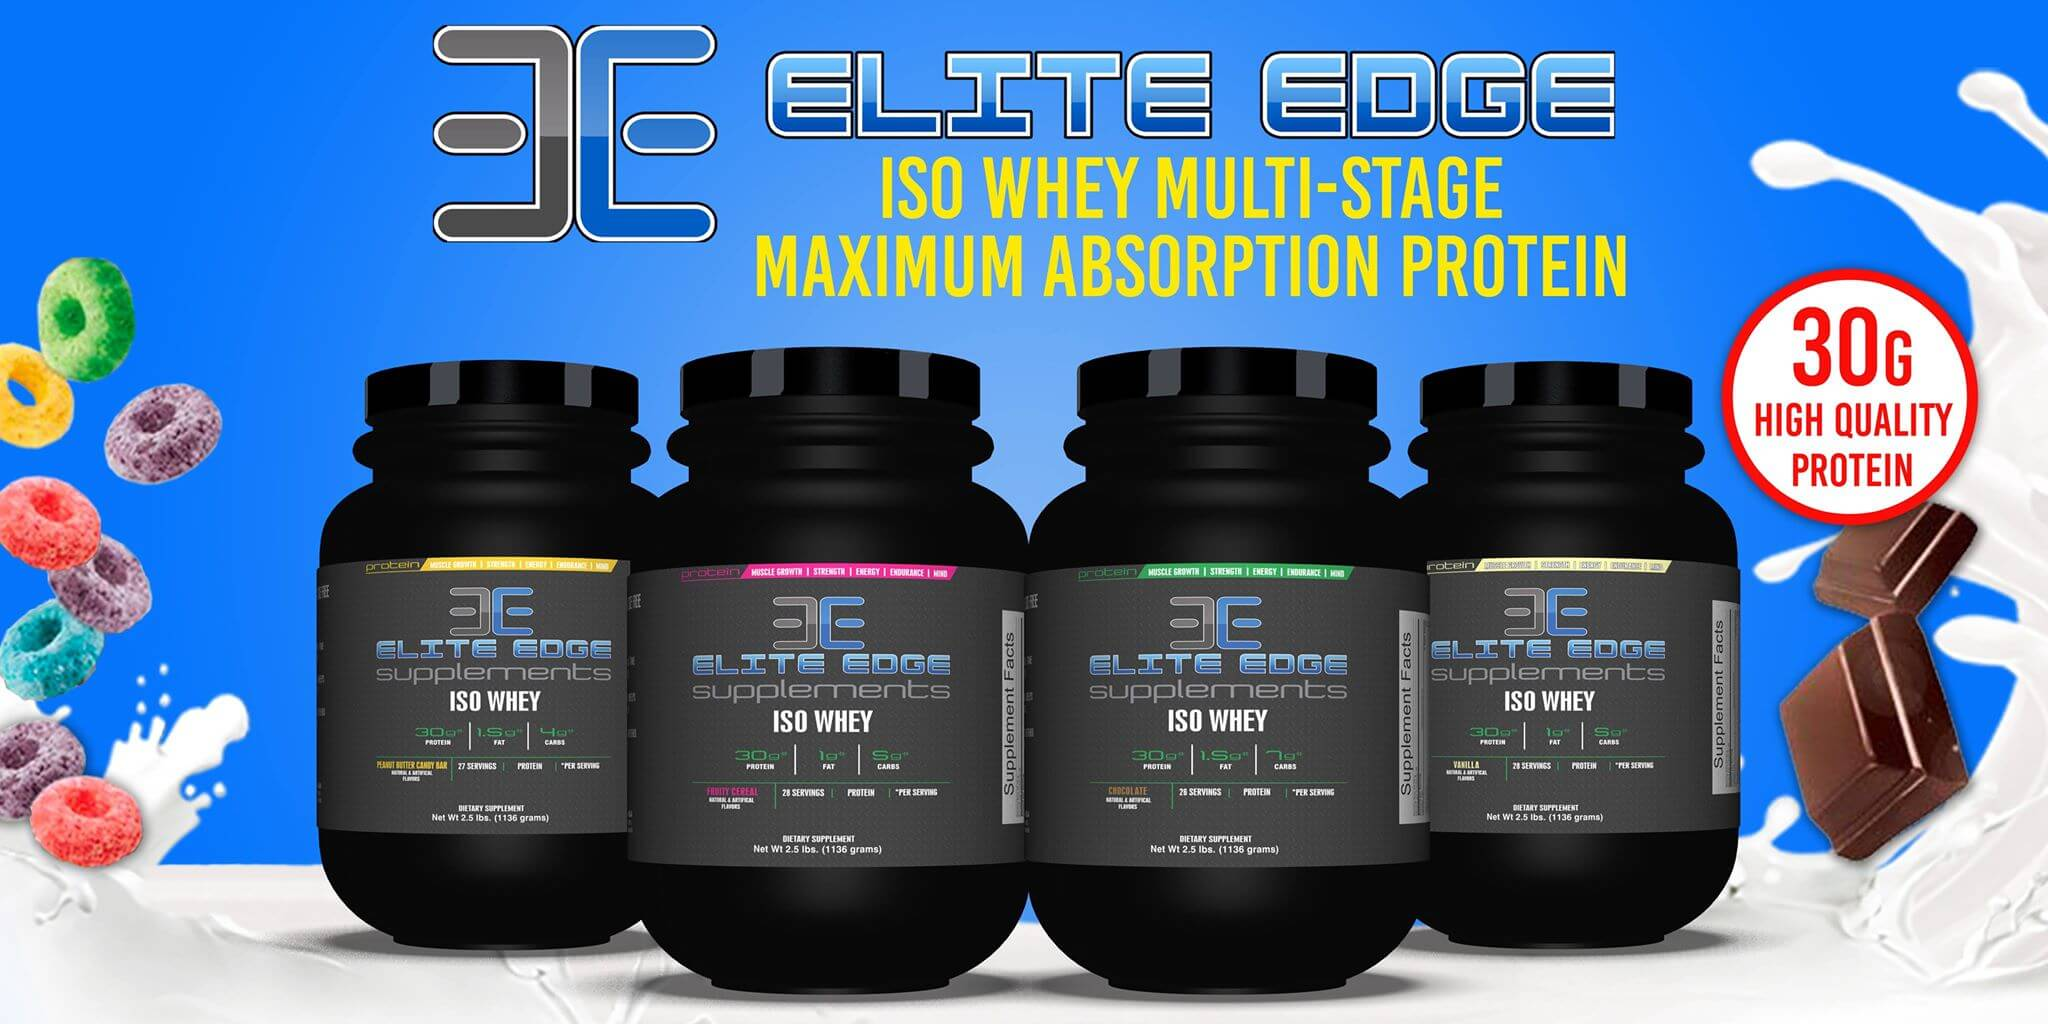 A photo of Elite Edge Supplements ISO Whey